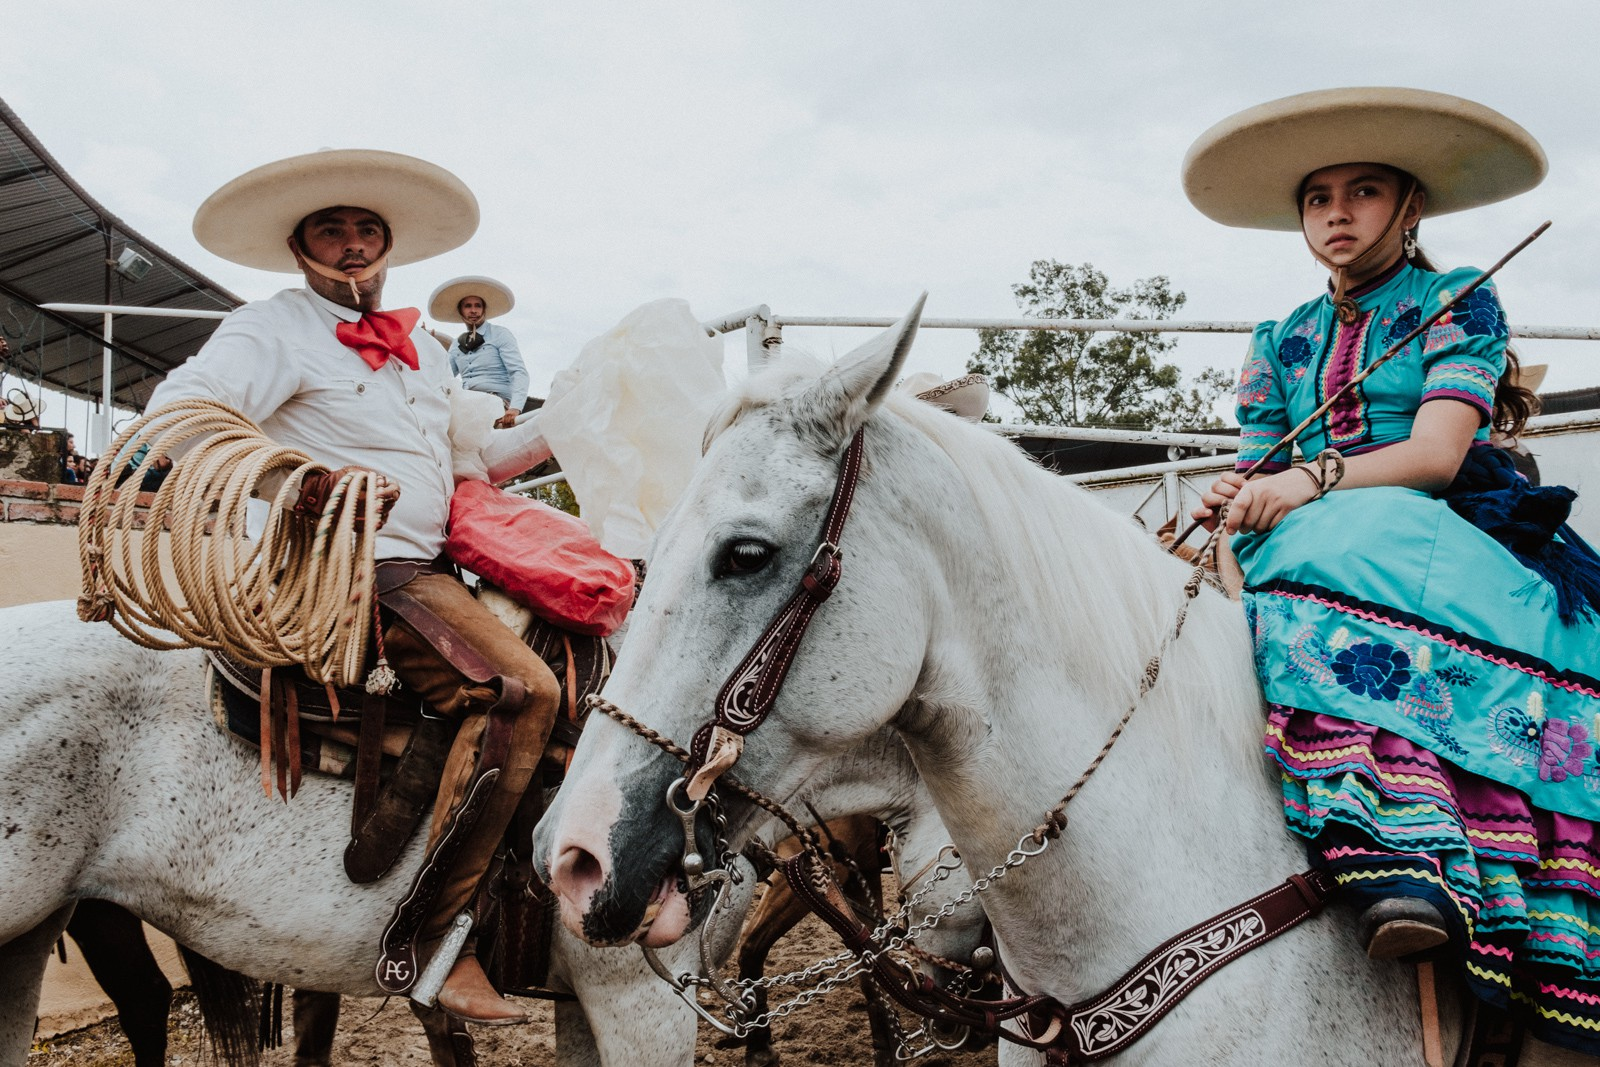 Both beginner and seasoned riders participate in the rodeo